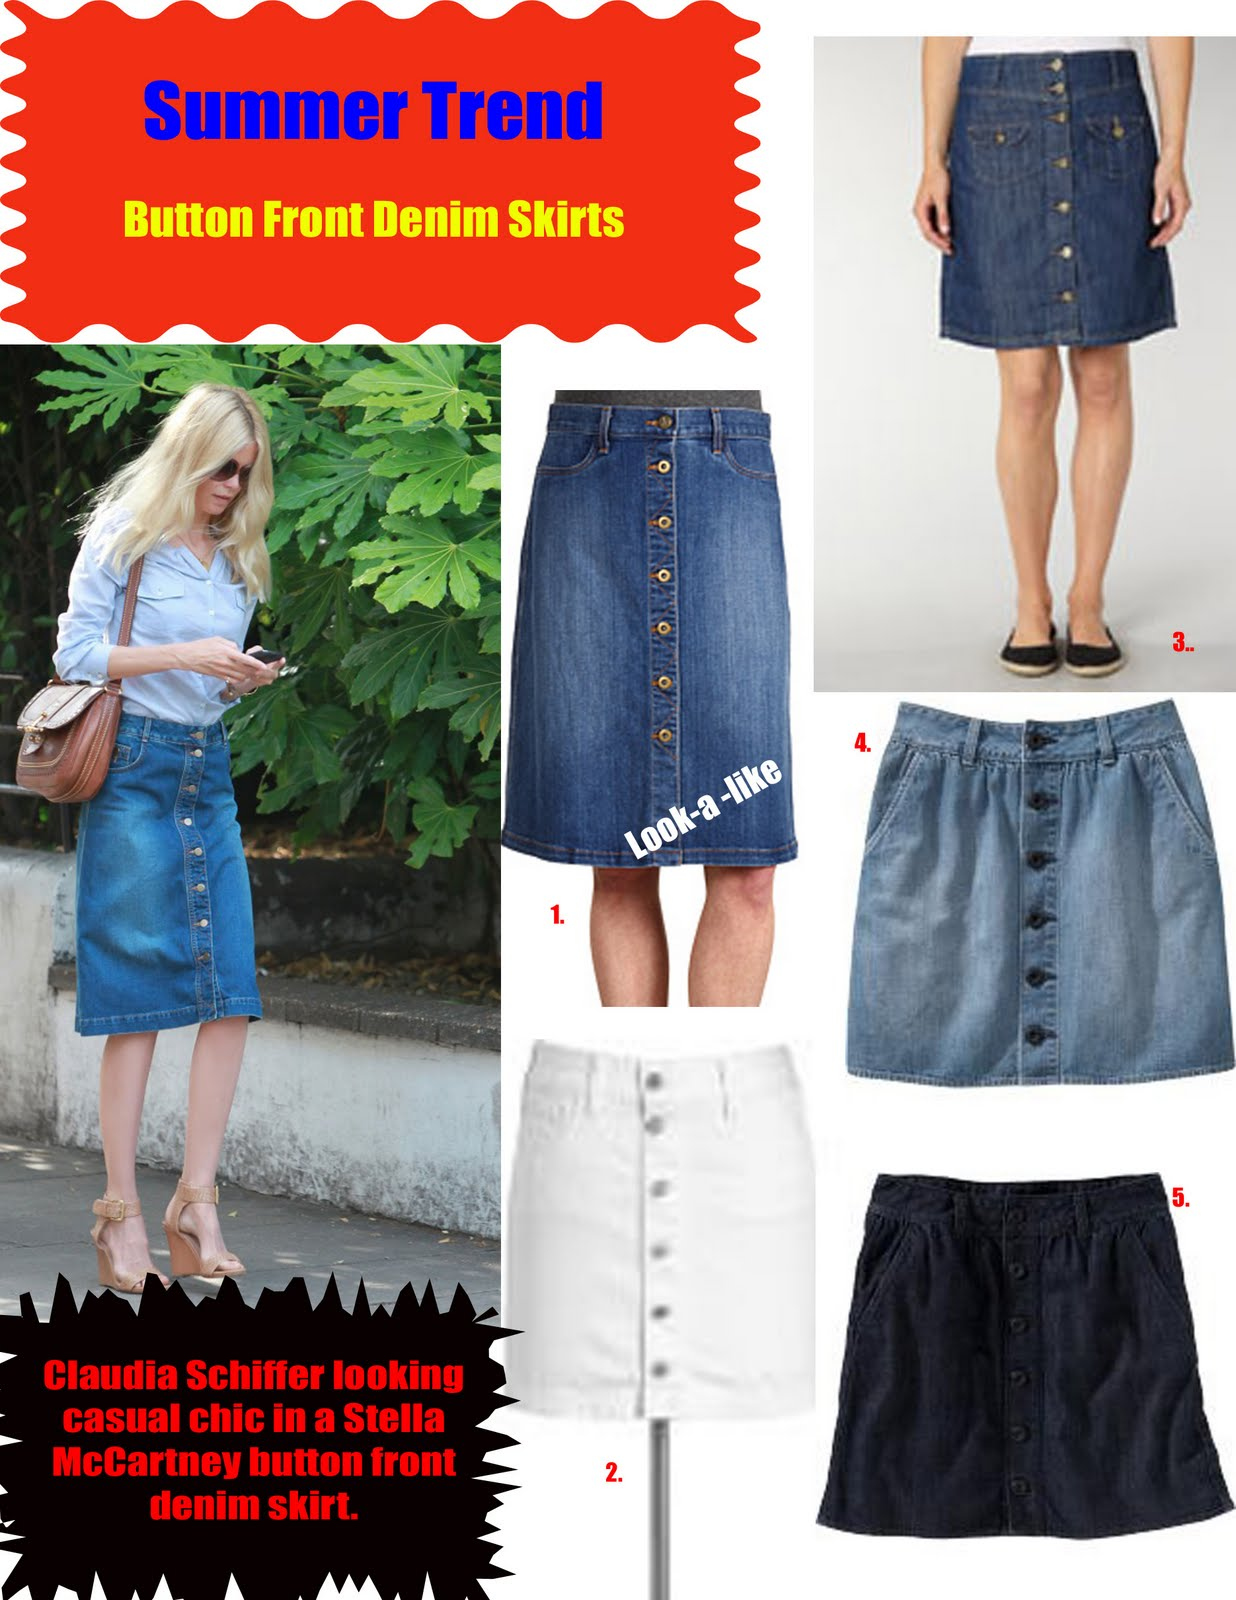 SUMMER TREND: BUTTON FRONT DENIM SKIRTS | Stylish Curves